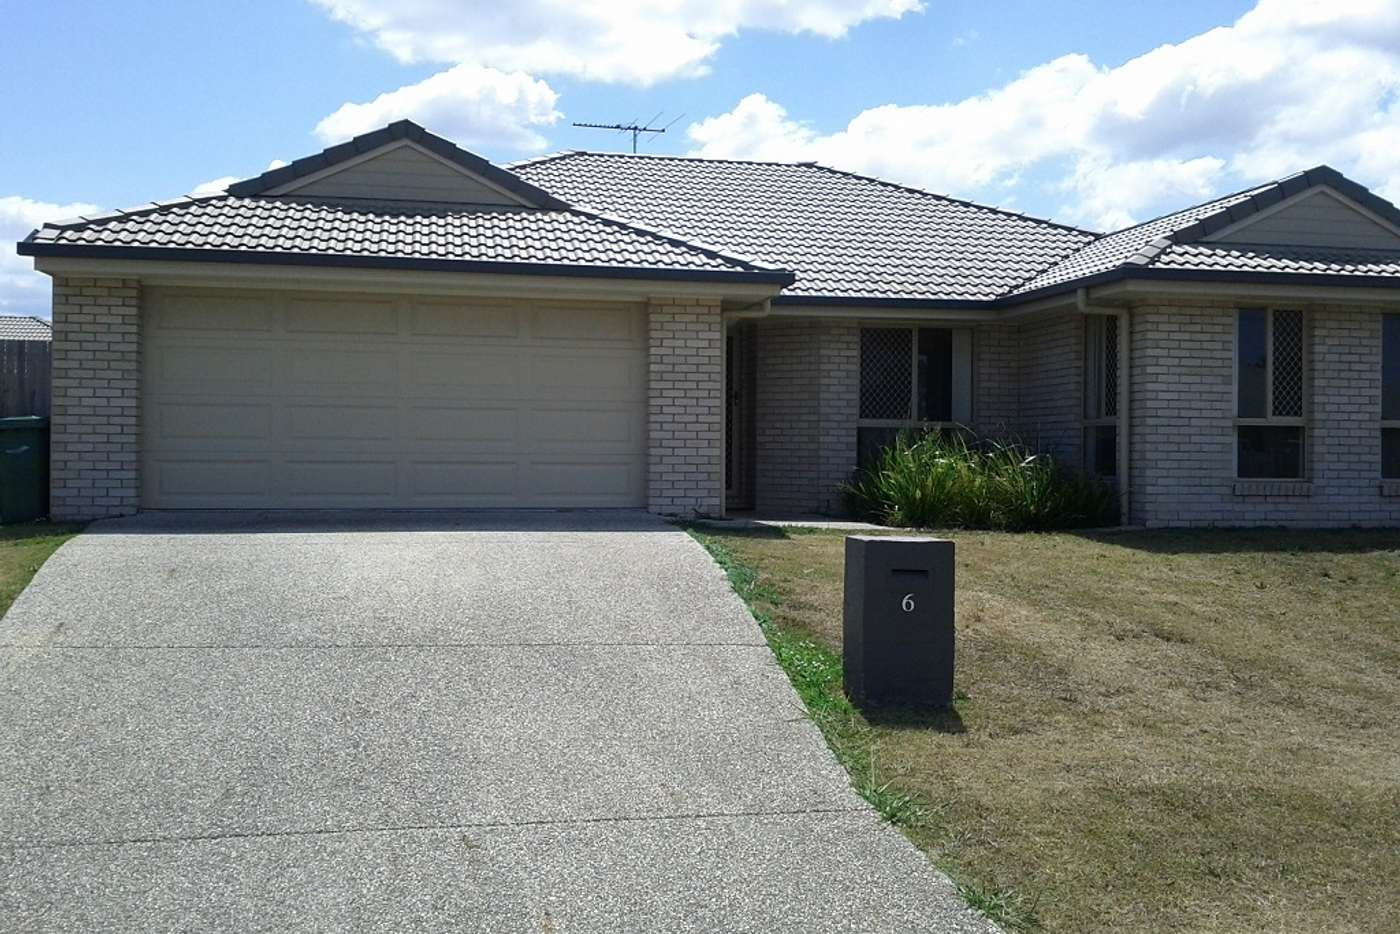 Main view of Homely house listing, 6 Jeita Circuit, Caboolture QLD 4510